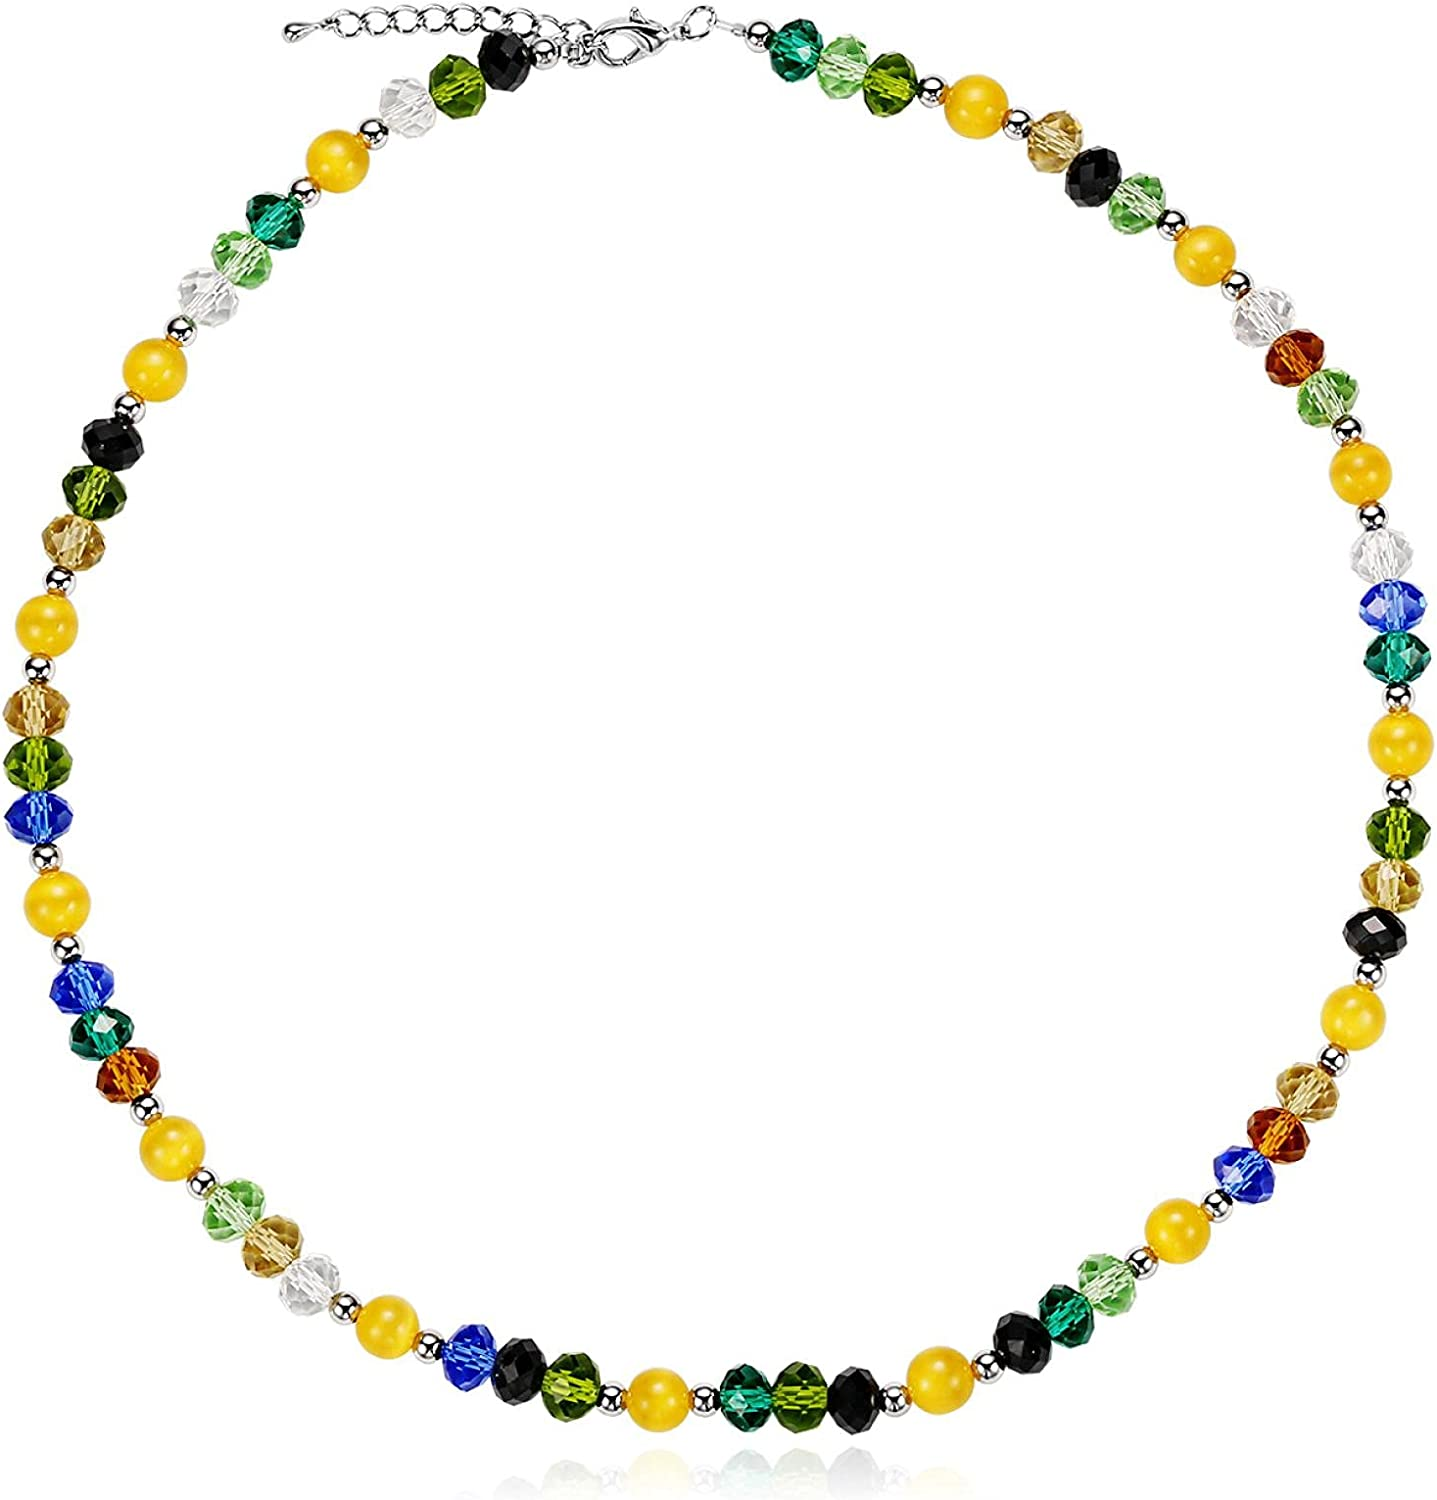 Cute Opal Short Beaded Collar Necklace With Clavicle Chain